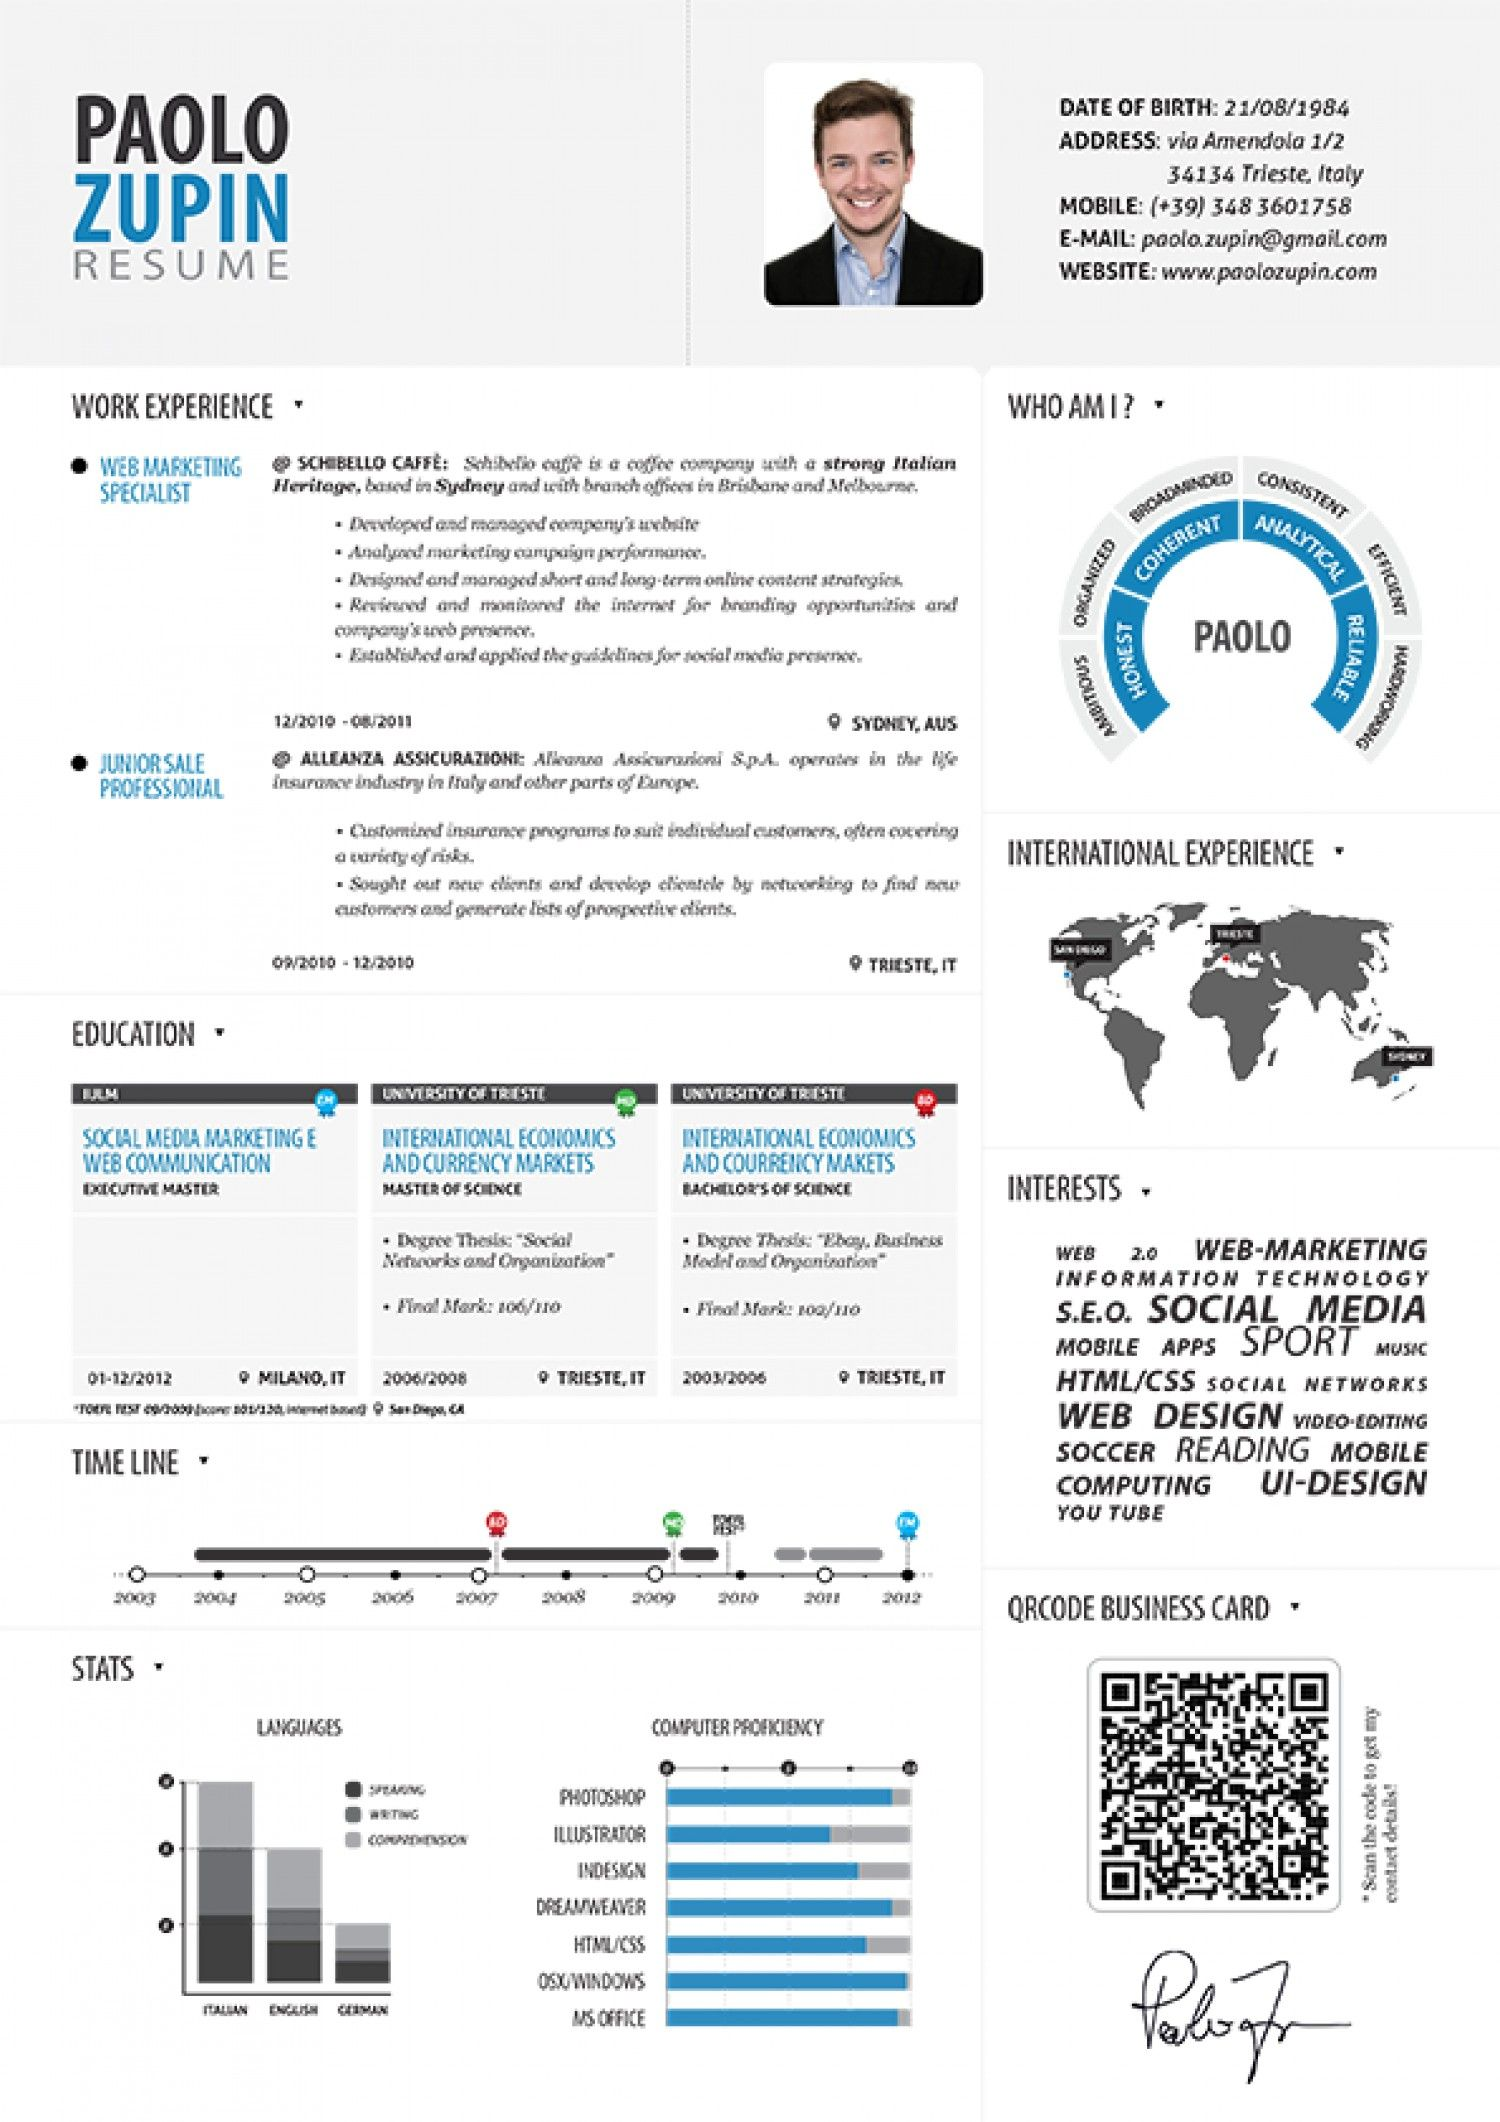 Opposenewapstandardsus  Prepossessing  Images About Infographic Resume On Pinterest  Infographic  With Fair  Images About Infographic Resume On Pinterest  Infographic Resume Resume And Business Resume With Beautiful Results Oriented Resume Also Proffesional Resume In Addition How To Make A Resume For Jobs And Security Officer Resume Sample As Well As Resume Template Word  Additionally Dance Resumes From Pinterestcom With Opposenewapstandardsus  Fair  Images About Infographic Resume On Pinterest  Infographic  With Beautiful  Images About Infographic Resume On Pinterest  Infographic Resume Resume And Business Resume And Prepossessing Results Oriented Resume Also Proffesional Resume In Addition How To Make A Resume For Jobs From Pinterestcom